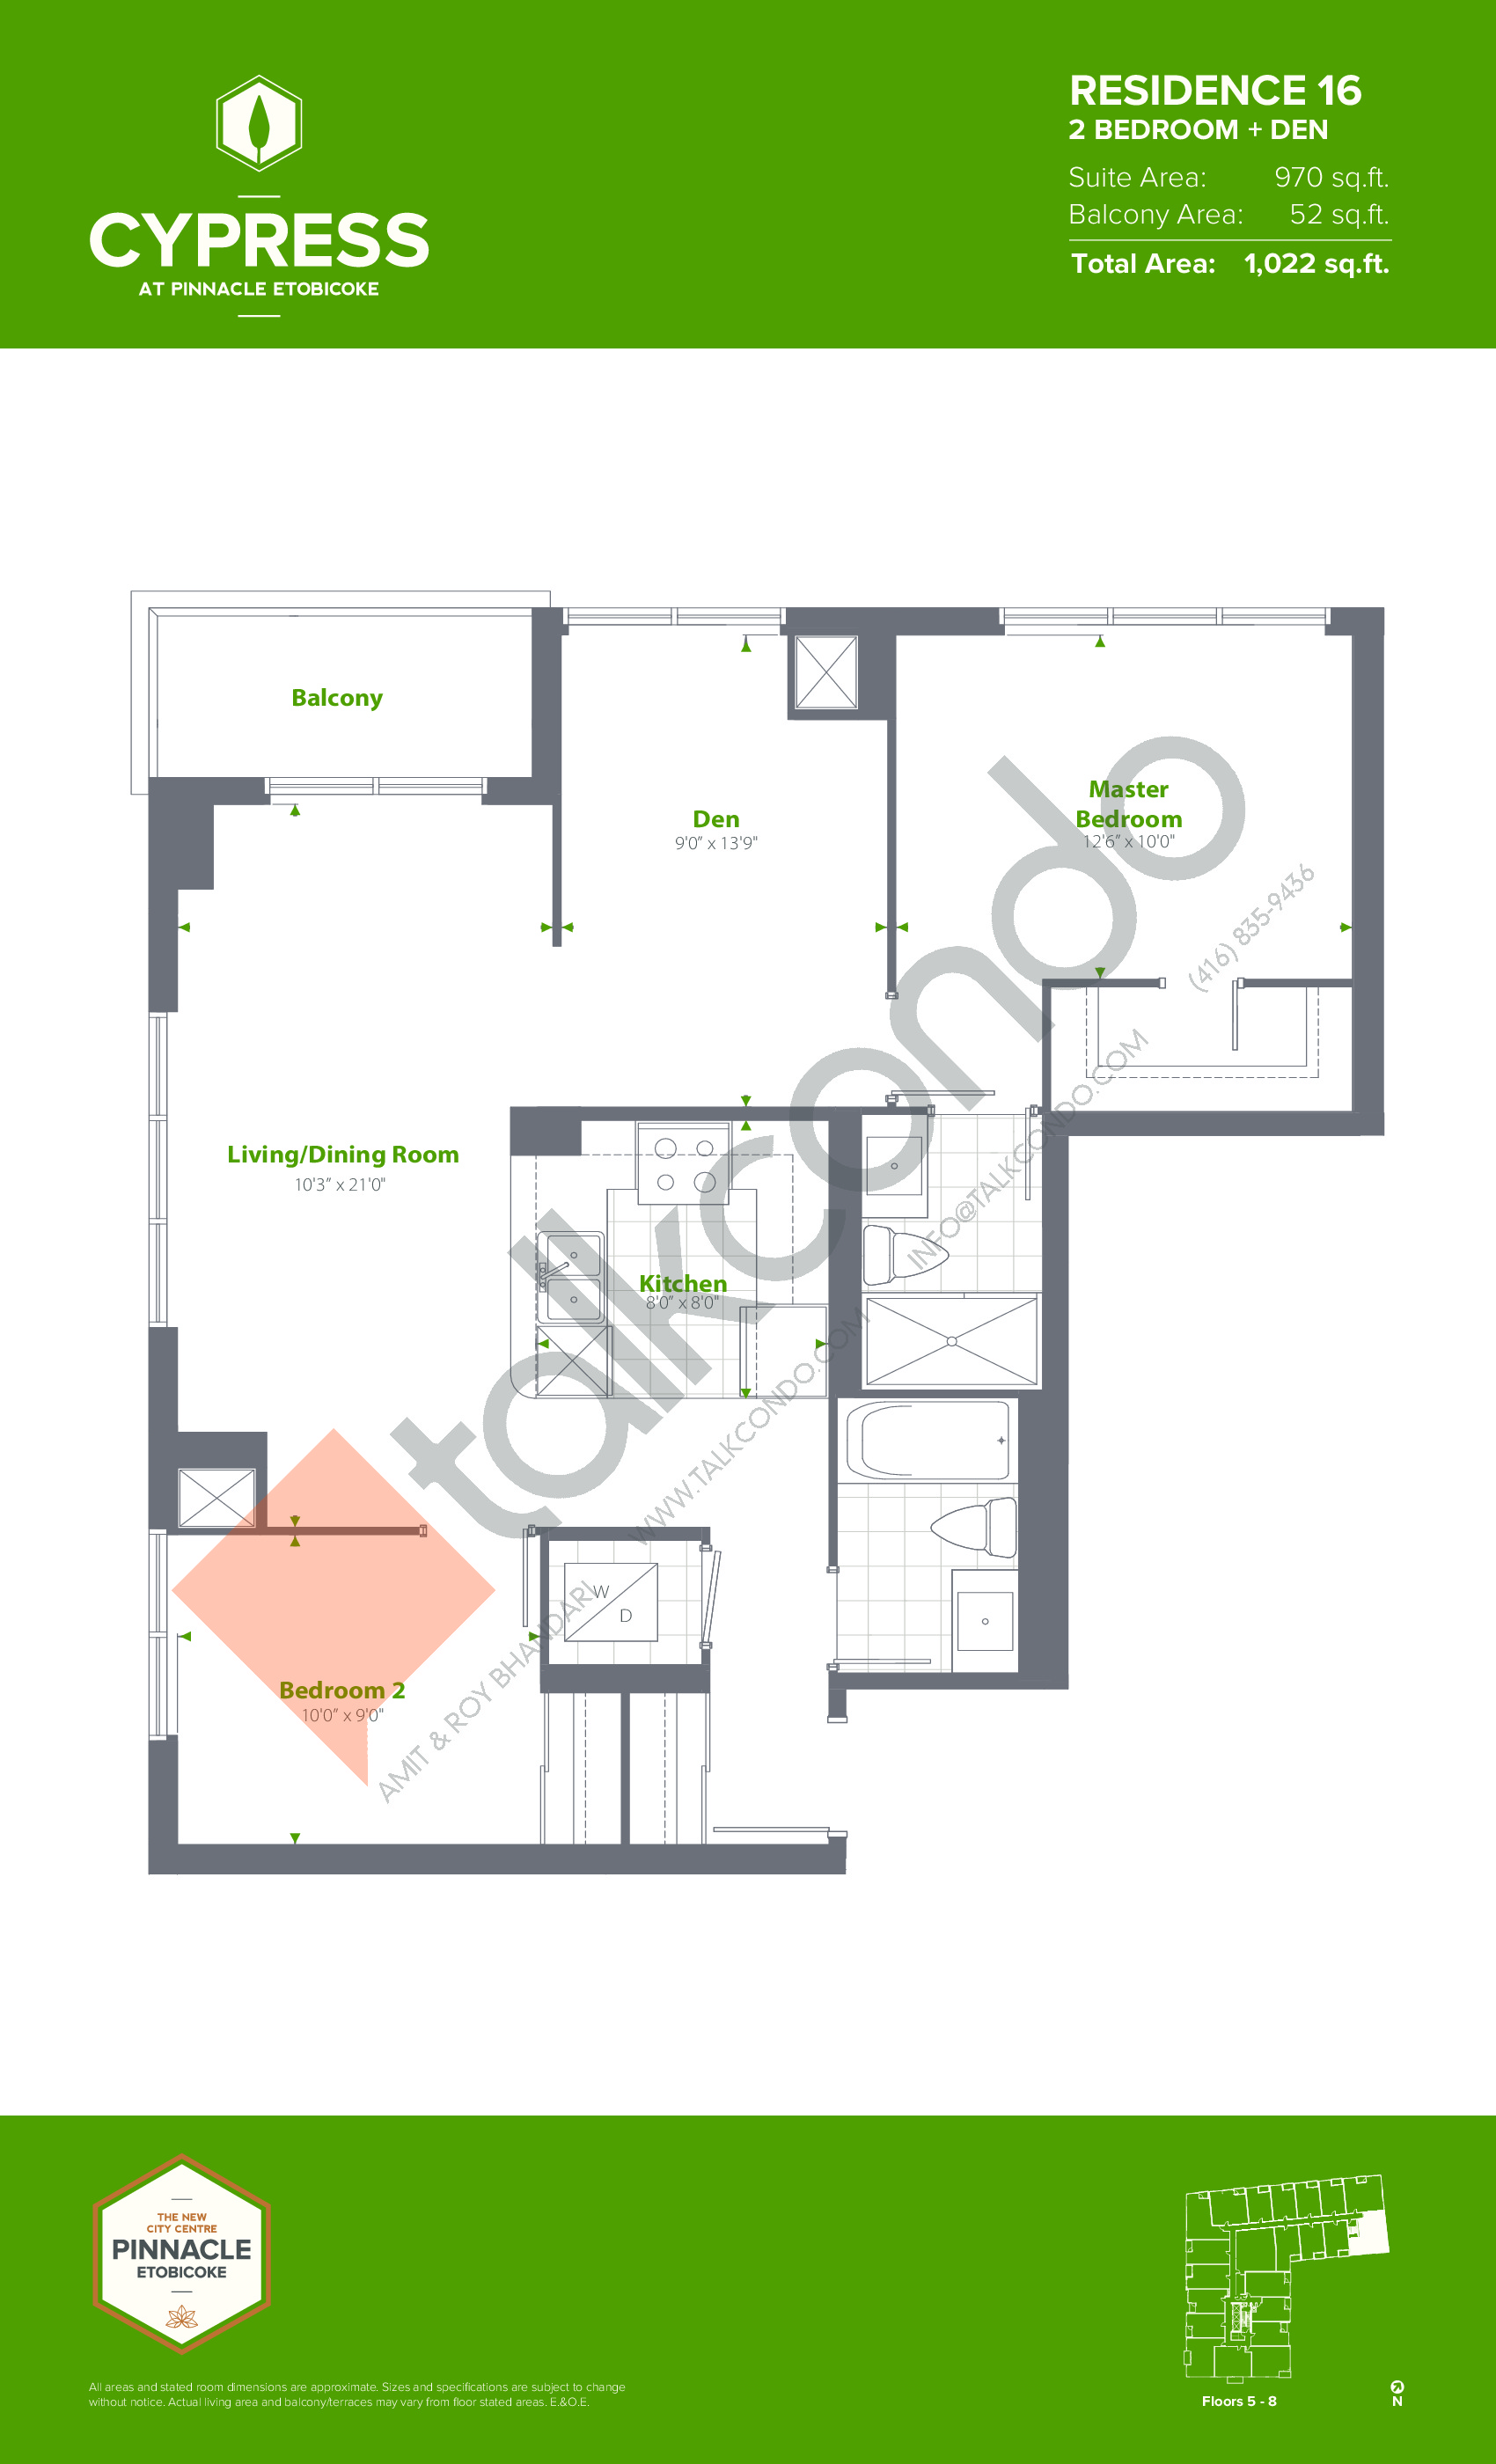 Residence 16 (Podium) Floor Plan at Cypress at Pinnacle Etobicoke - 970 sq.ft